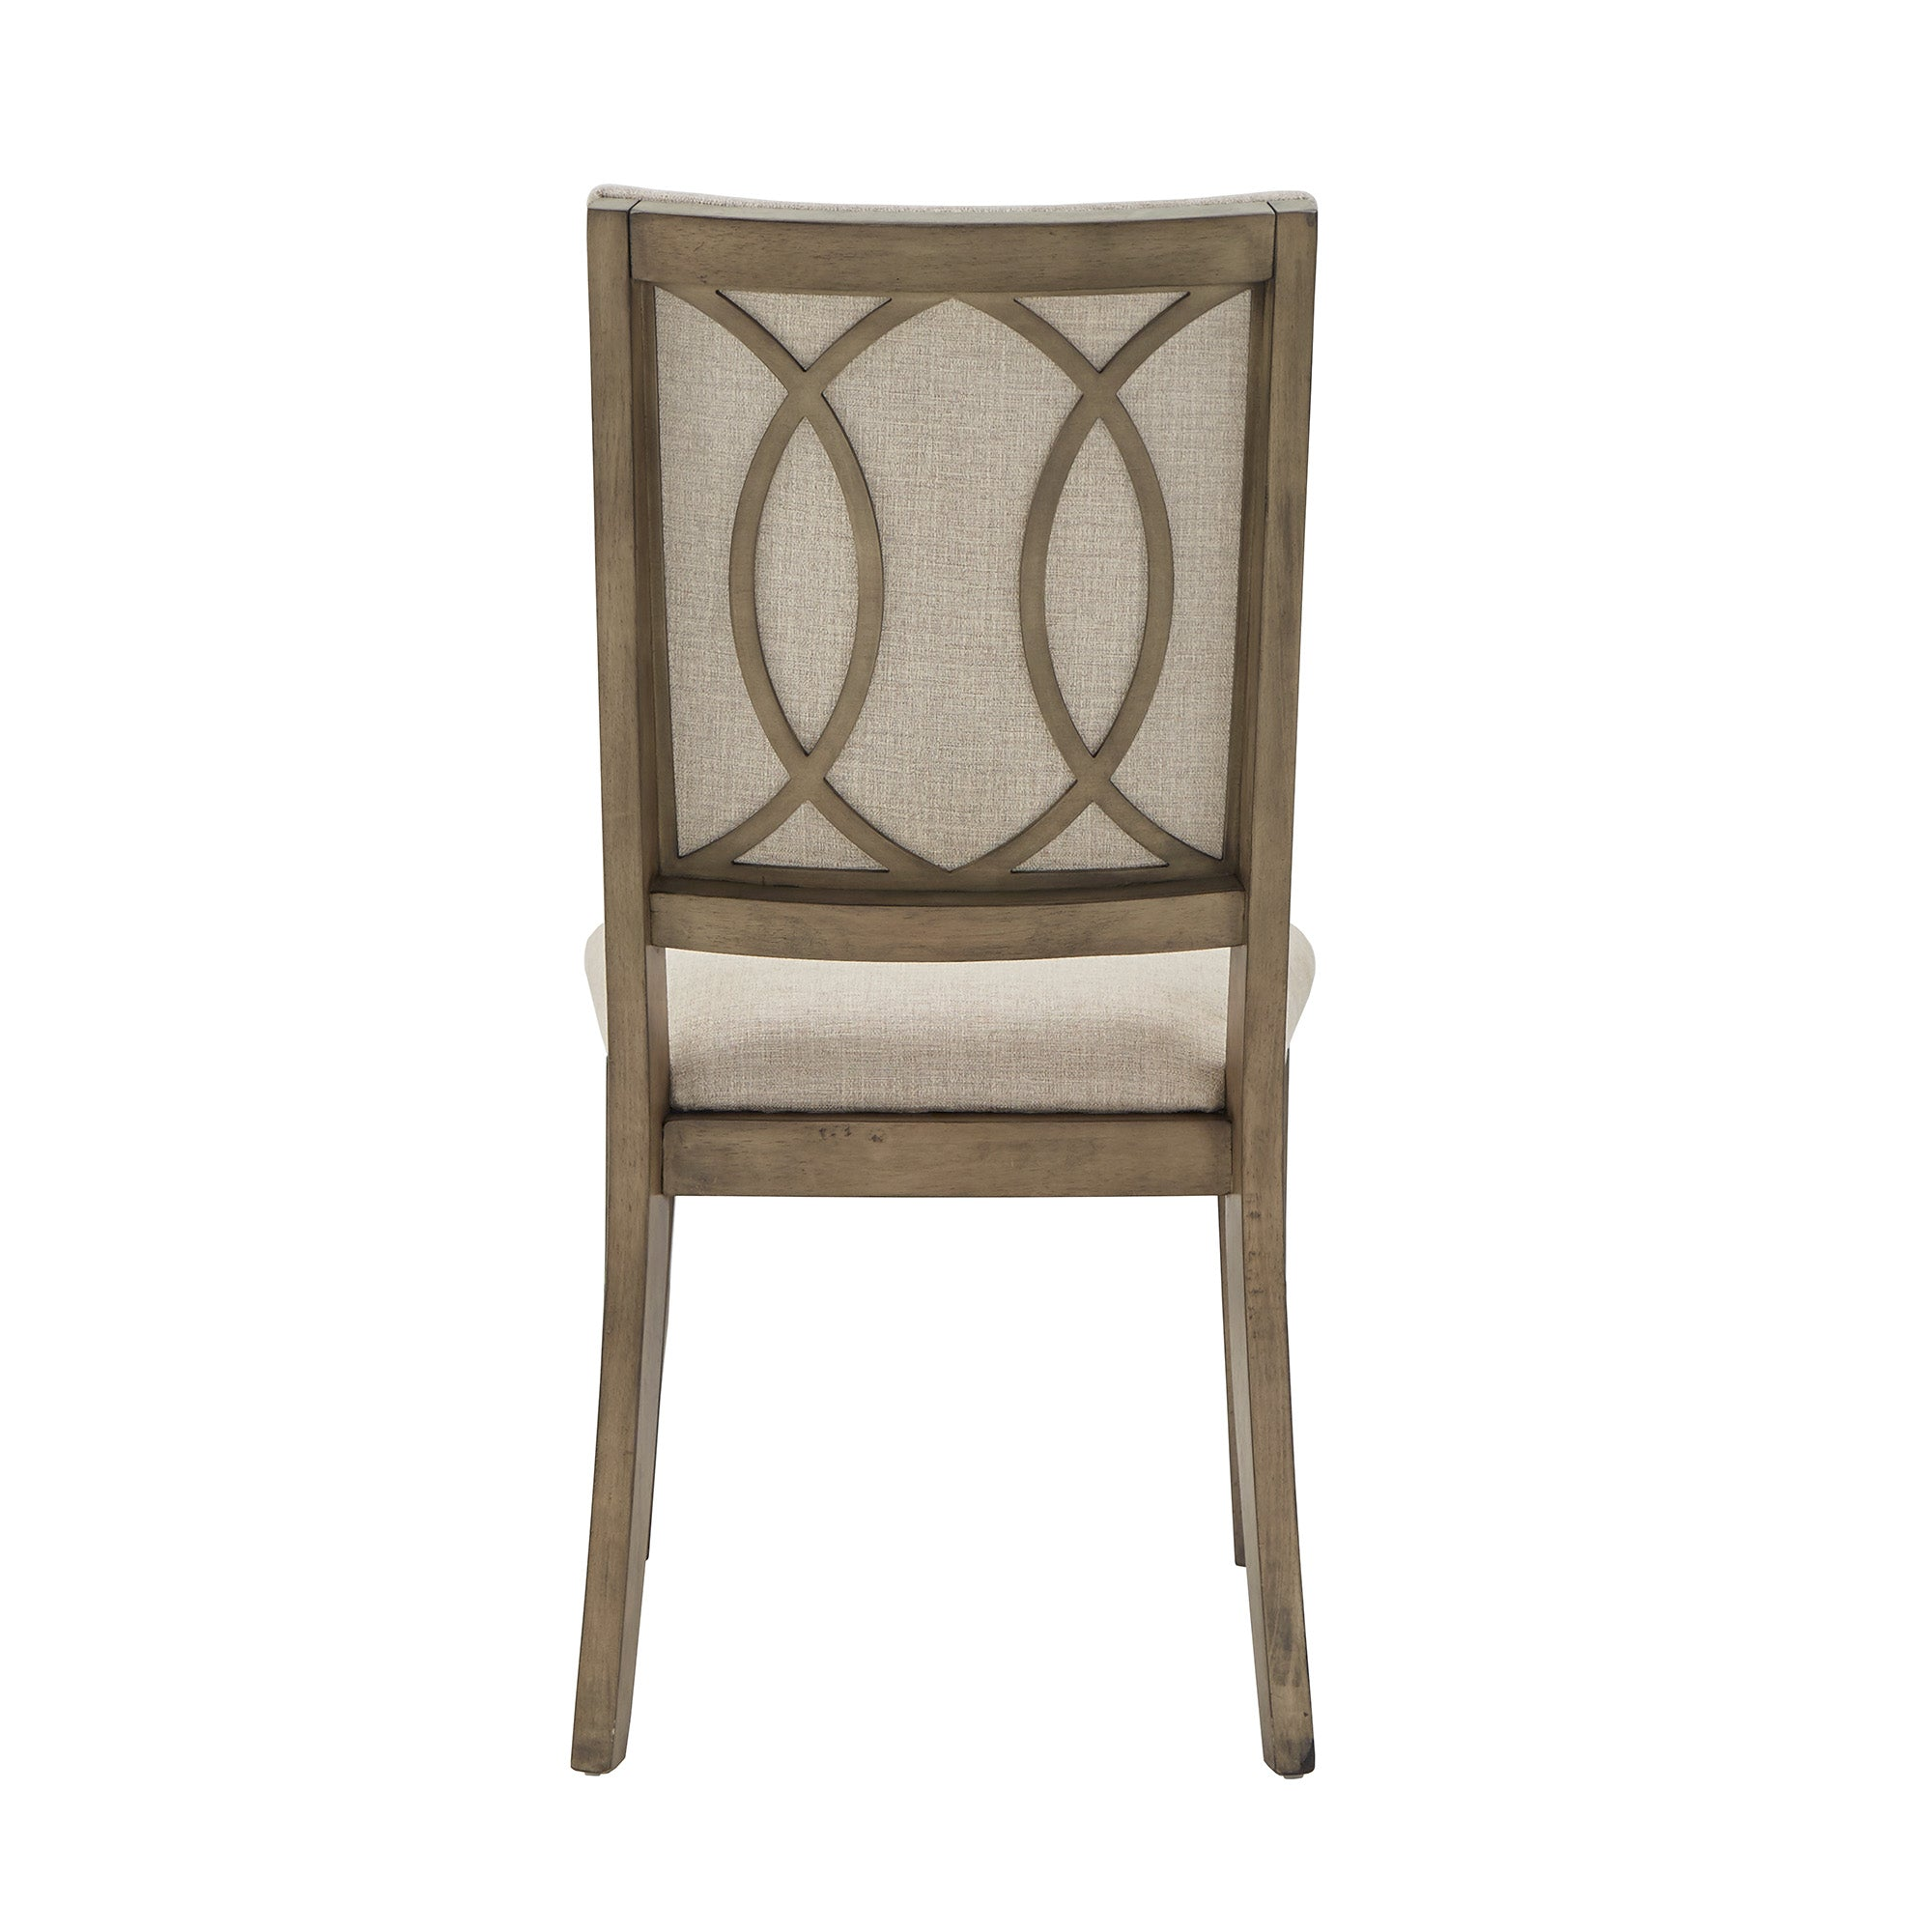 Antique Beige Fabric Dining Chairs (Set of 2)